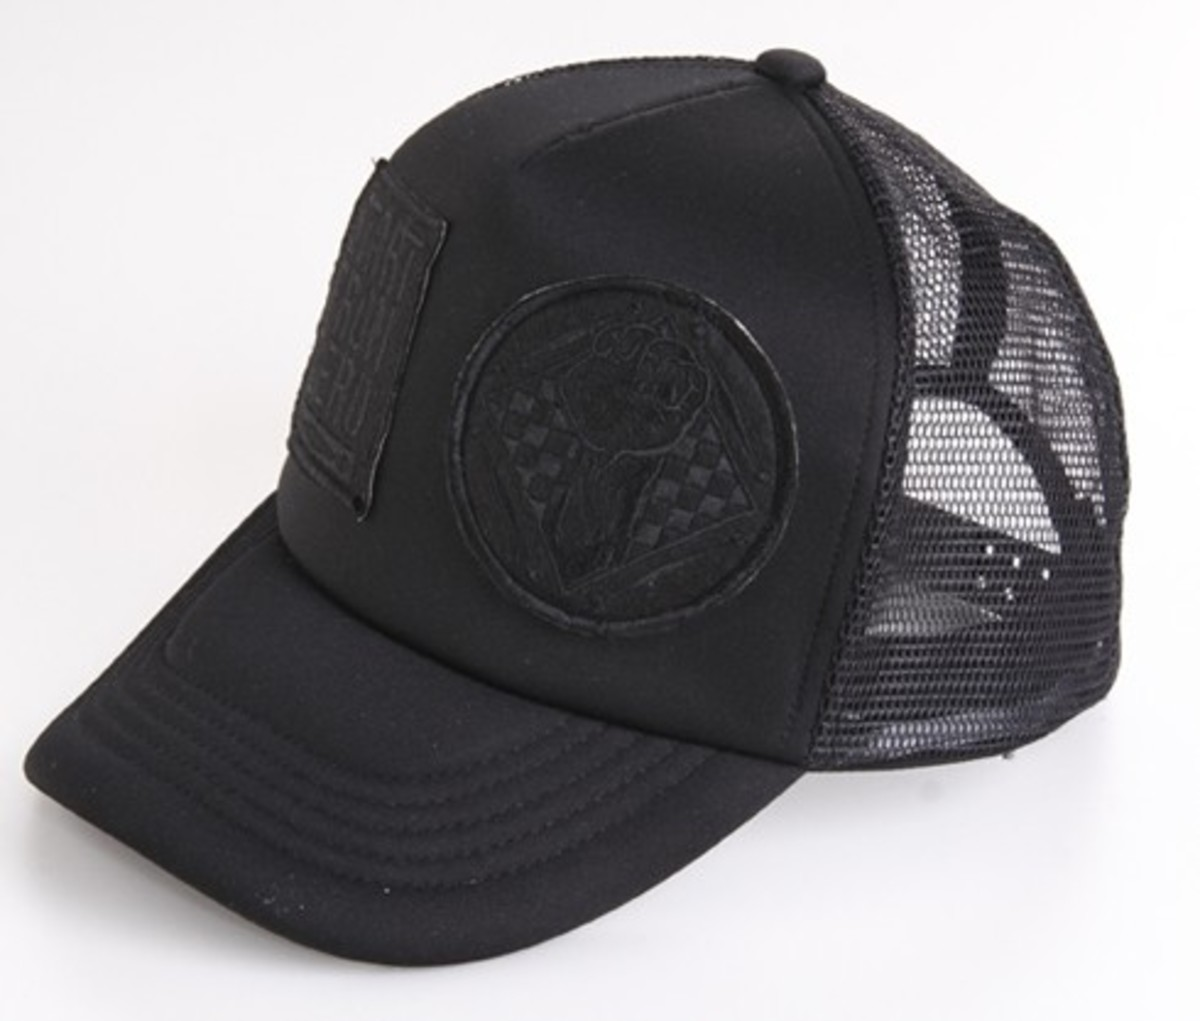 freshness-trucker-black-patches.jpg